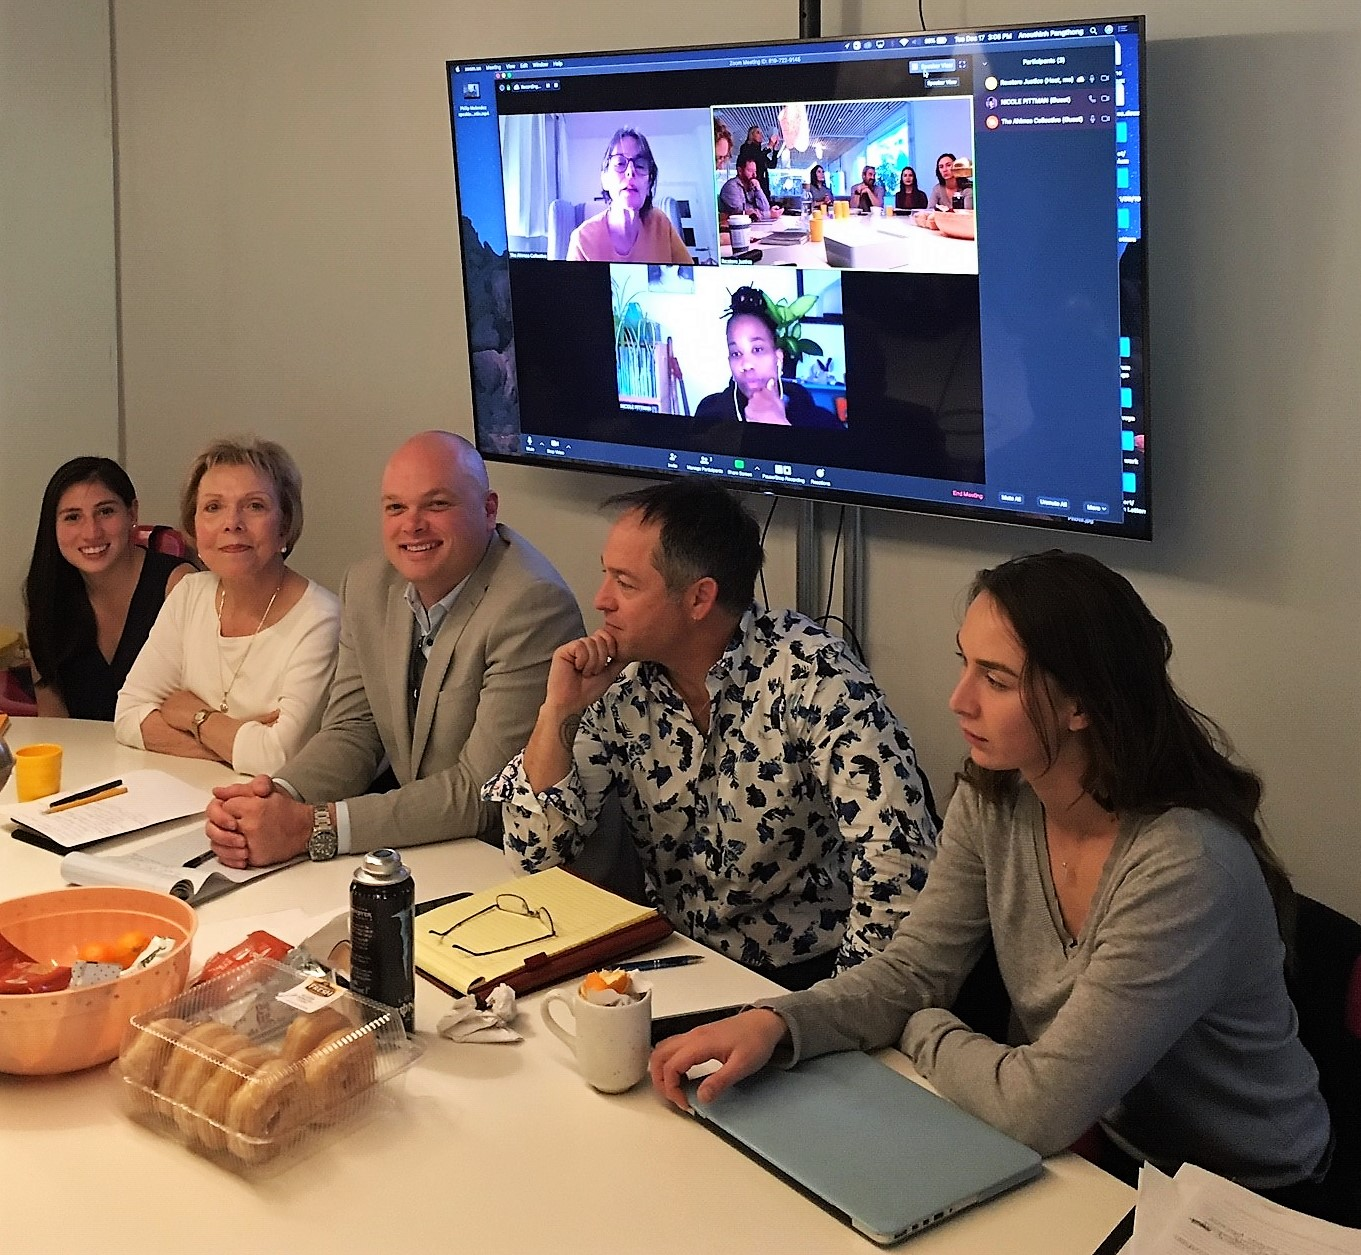 Men and women sit around a table while a video conference screen shows others participating.